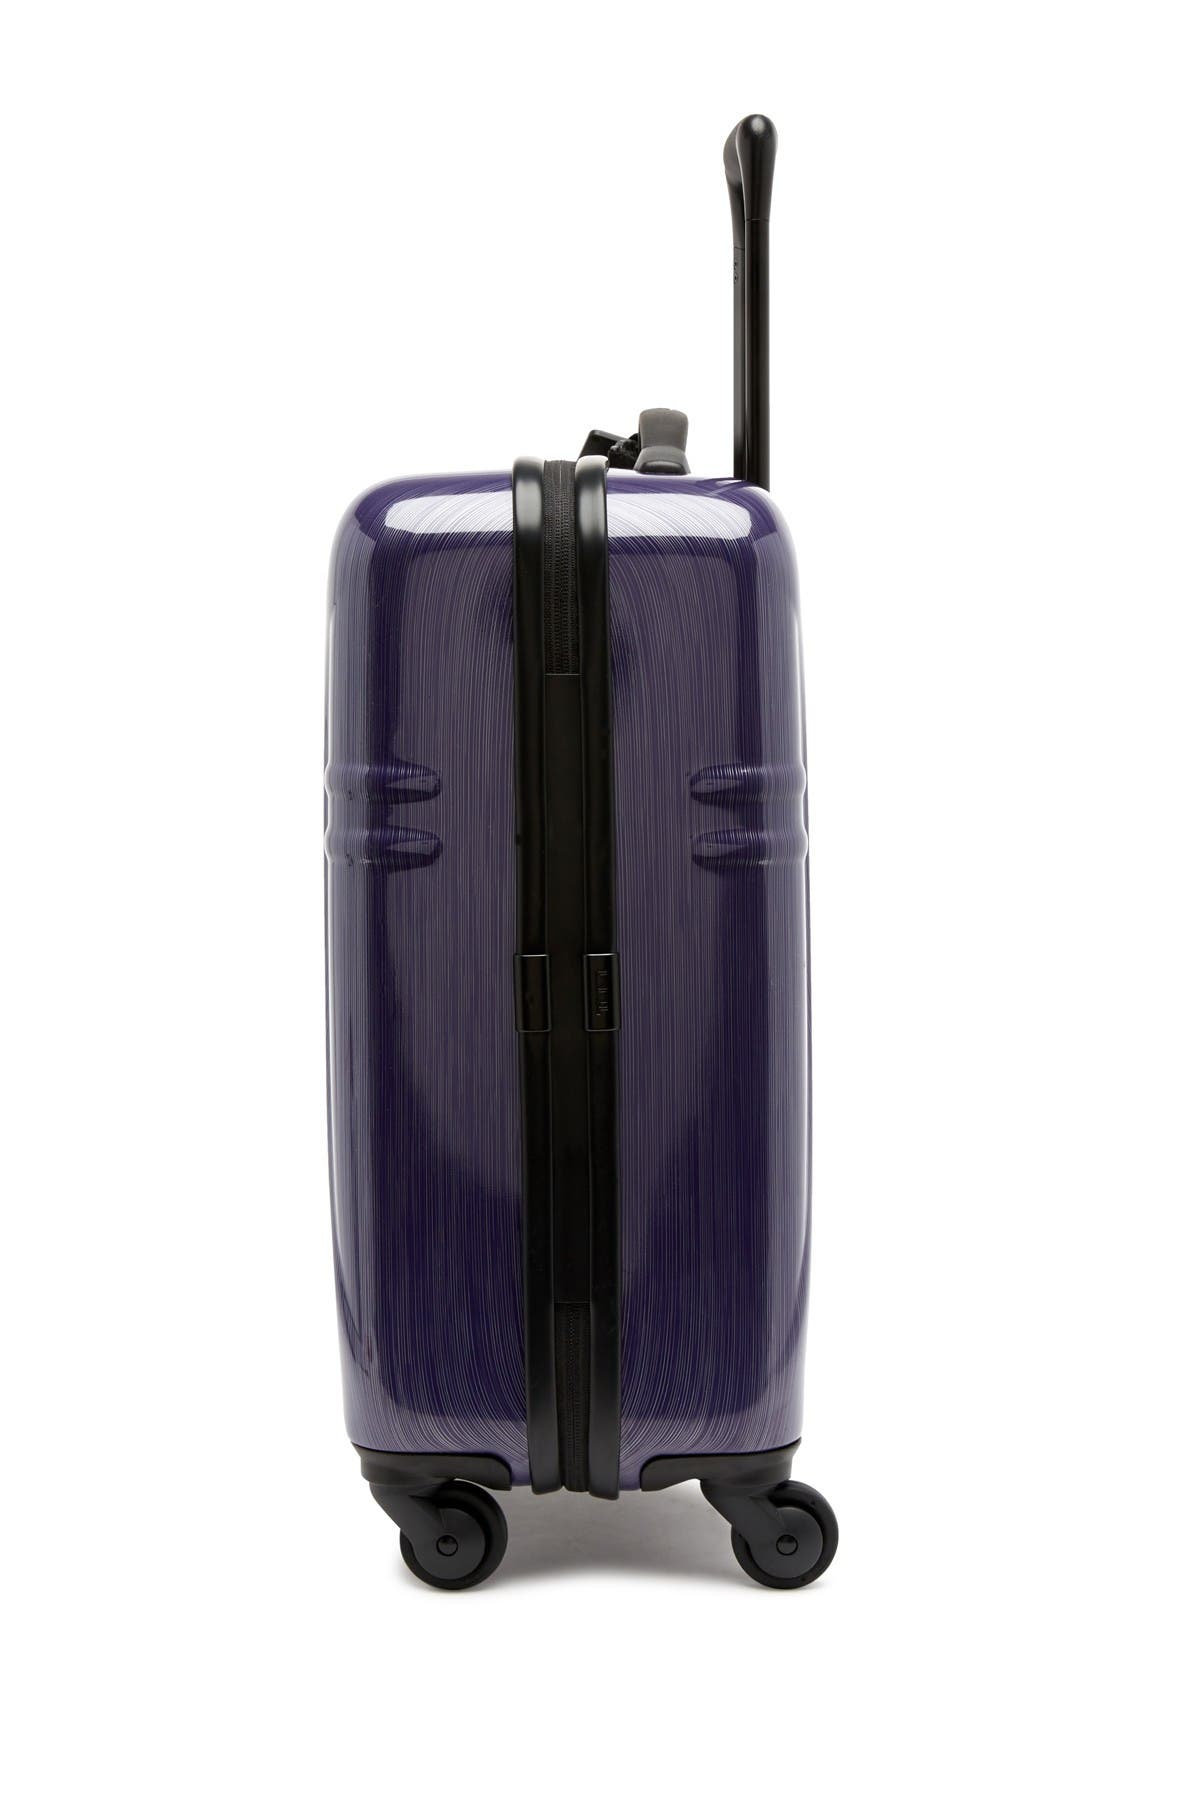 Image of Tumi International Carry-On Spinner Case